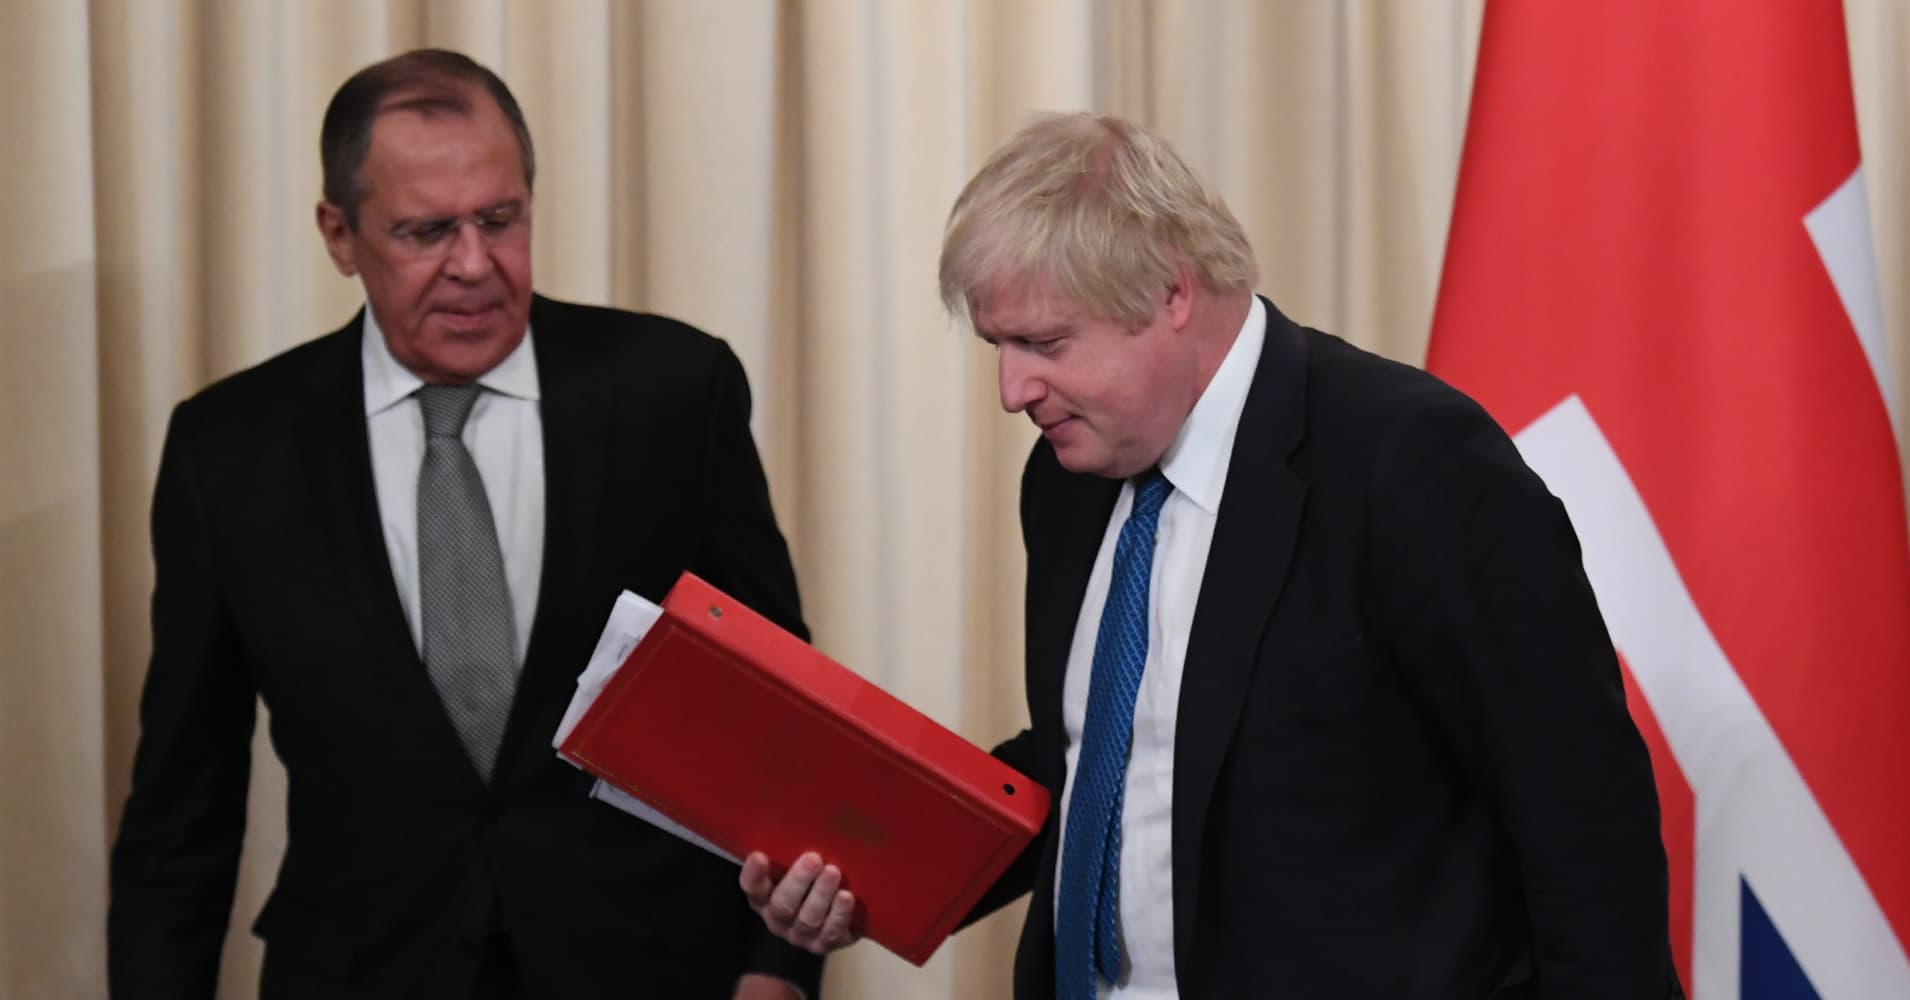 Russia to expel UK diplomats as row over spy attack escalates